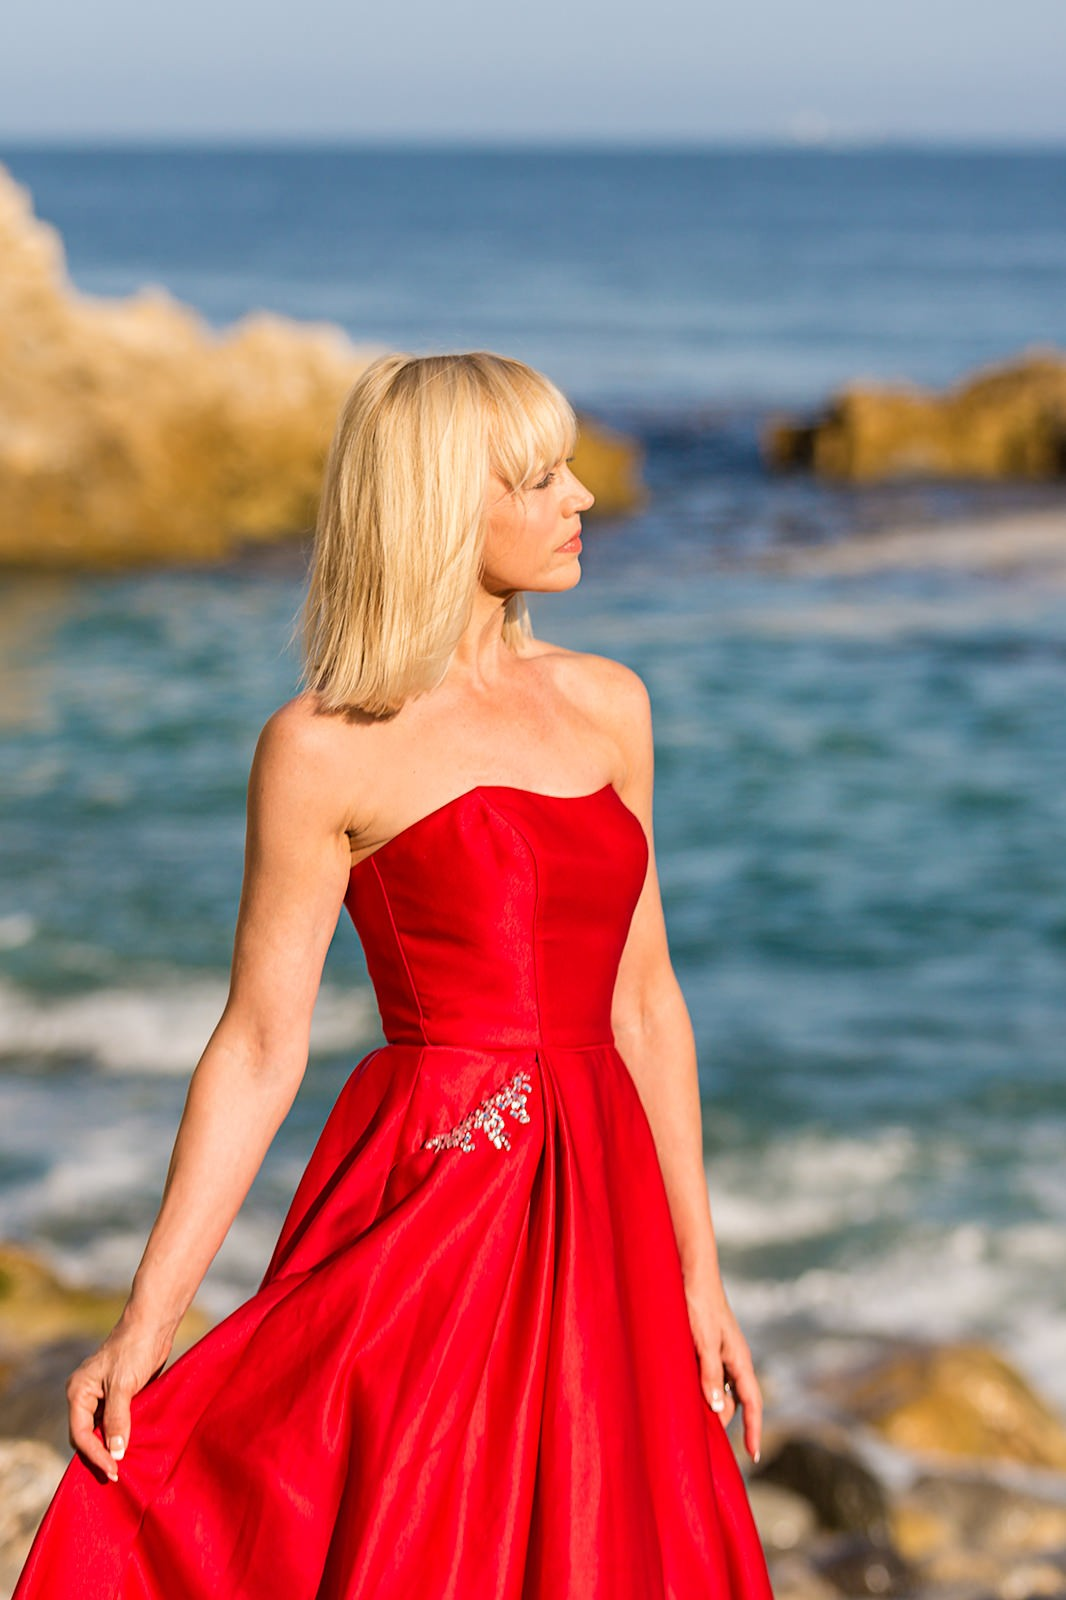 Ballgowns, Beaches, and Boho | CatherineGraceO